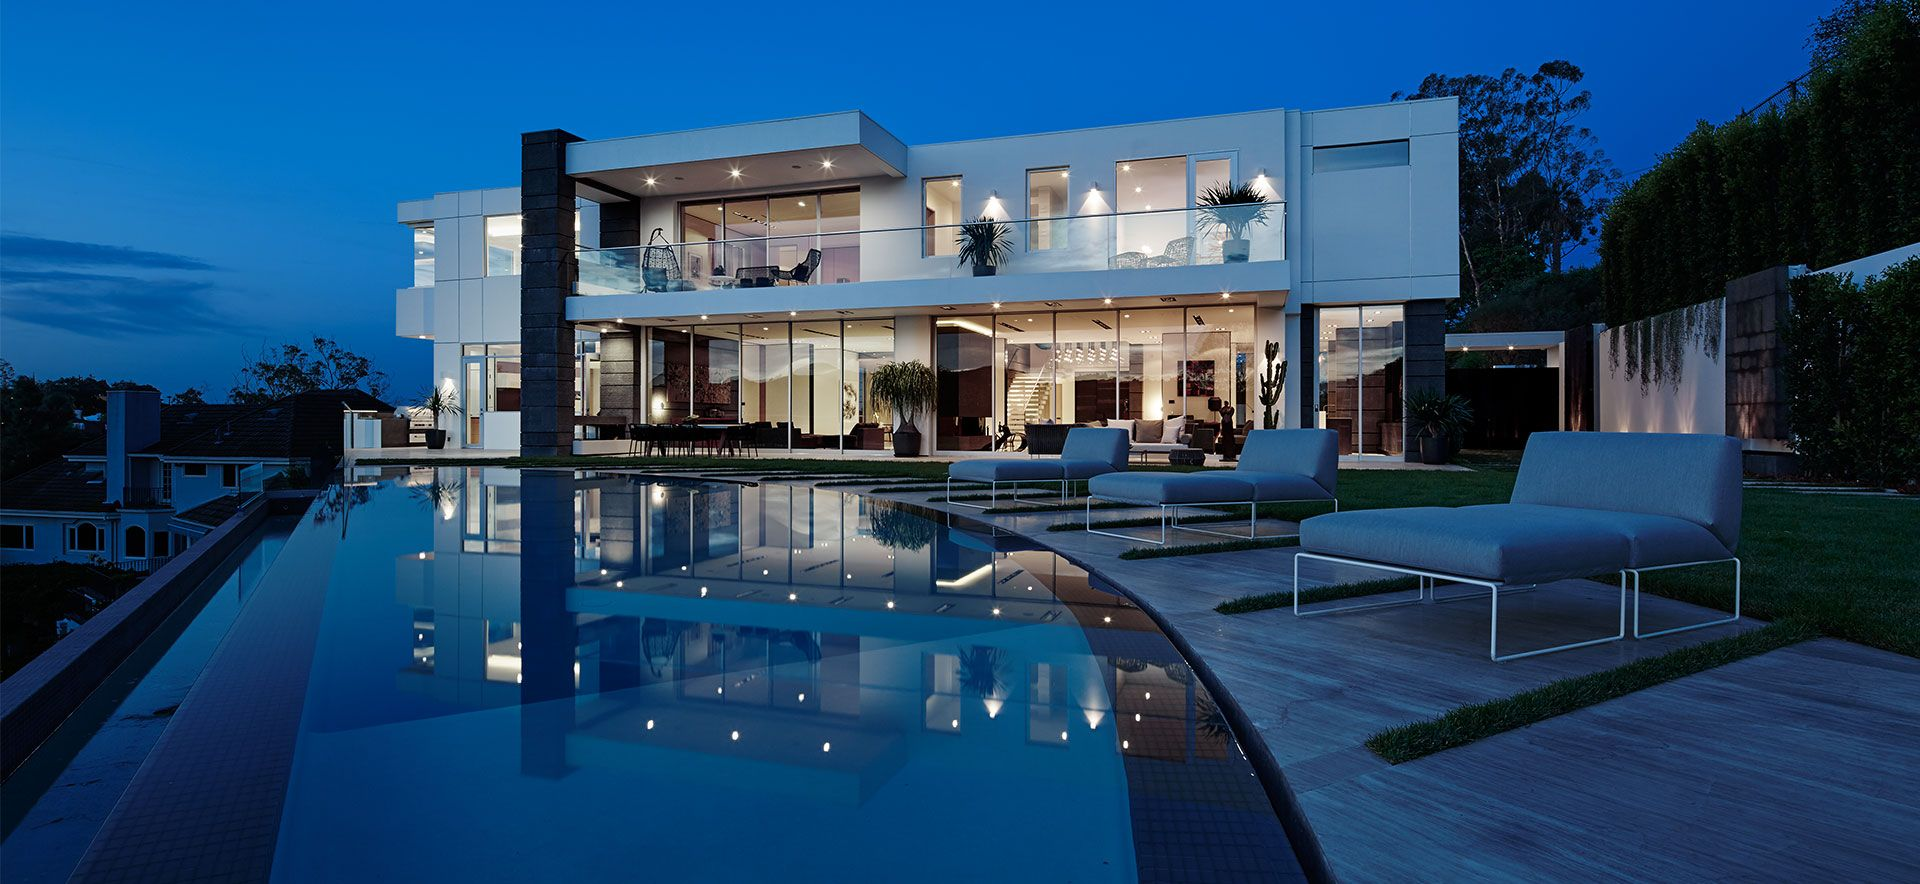 1740 Bel Air Road Modern Residence Architecture And Home Design Mansions Architecture Modern Mansion